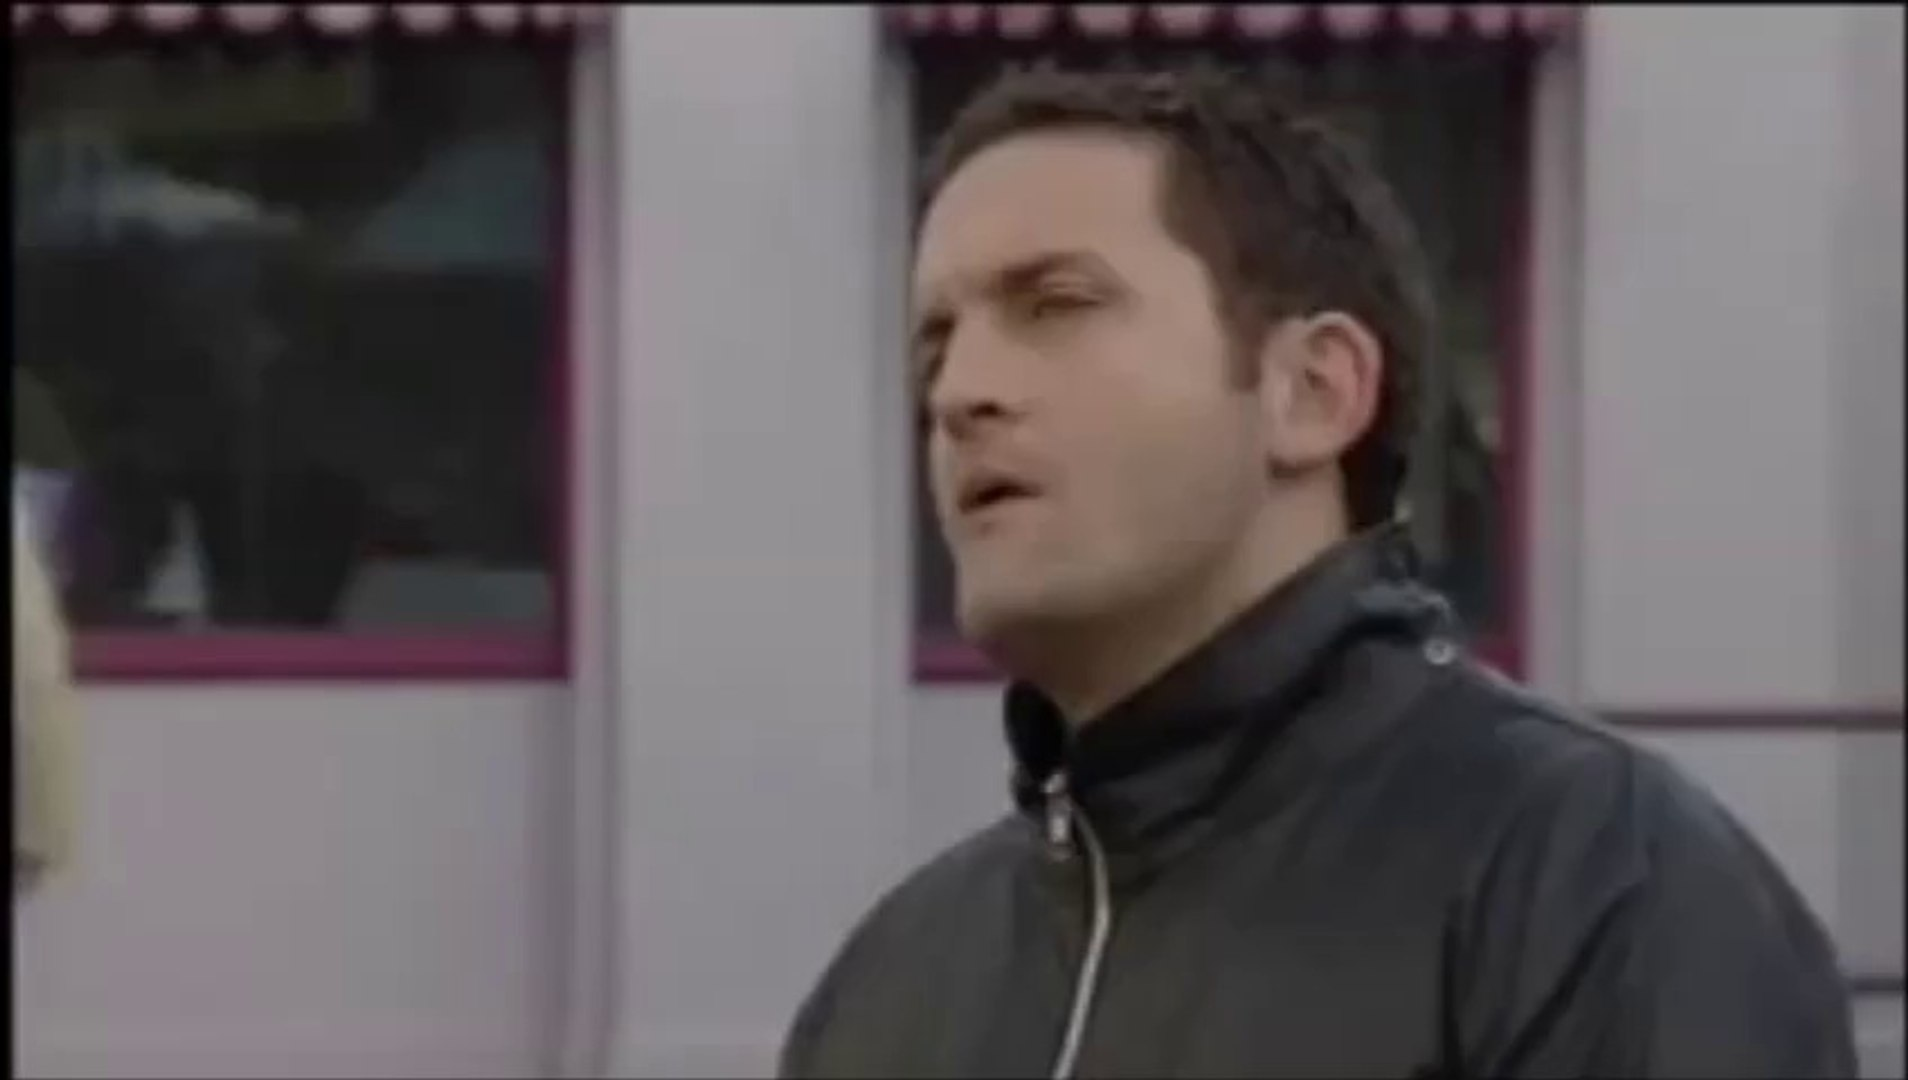 EastEnders - Danny Moon Punches Jake Moon (15 February 2005)